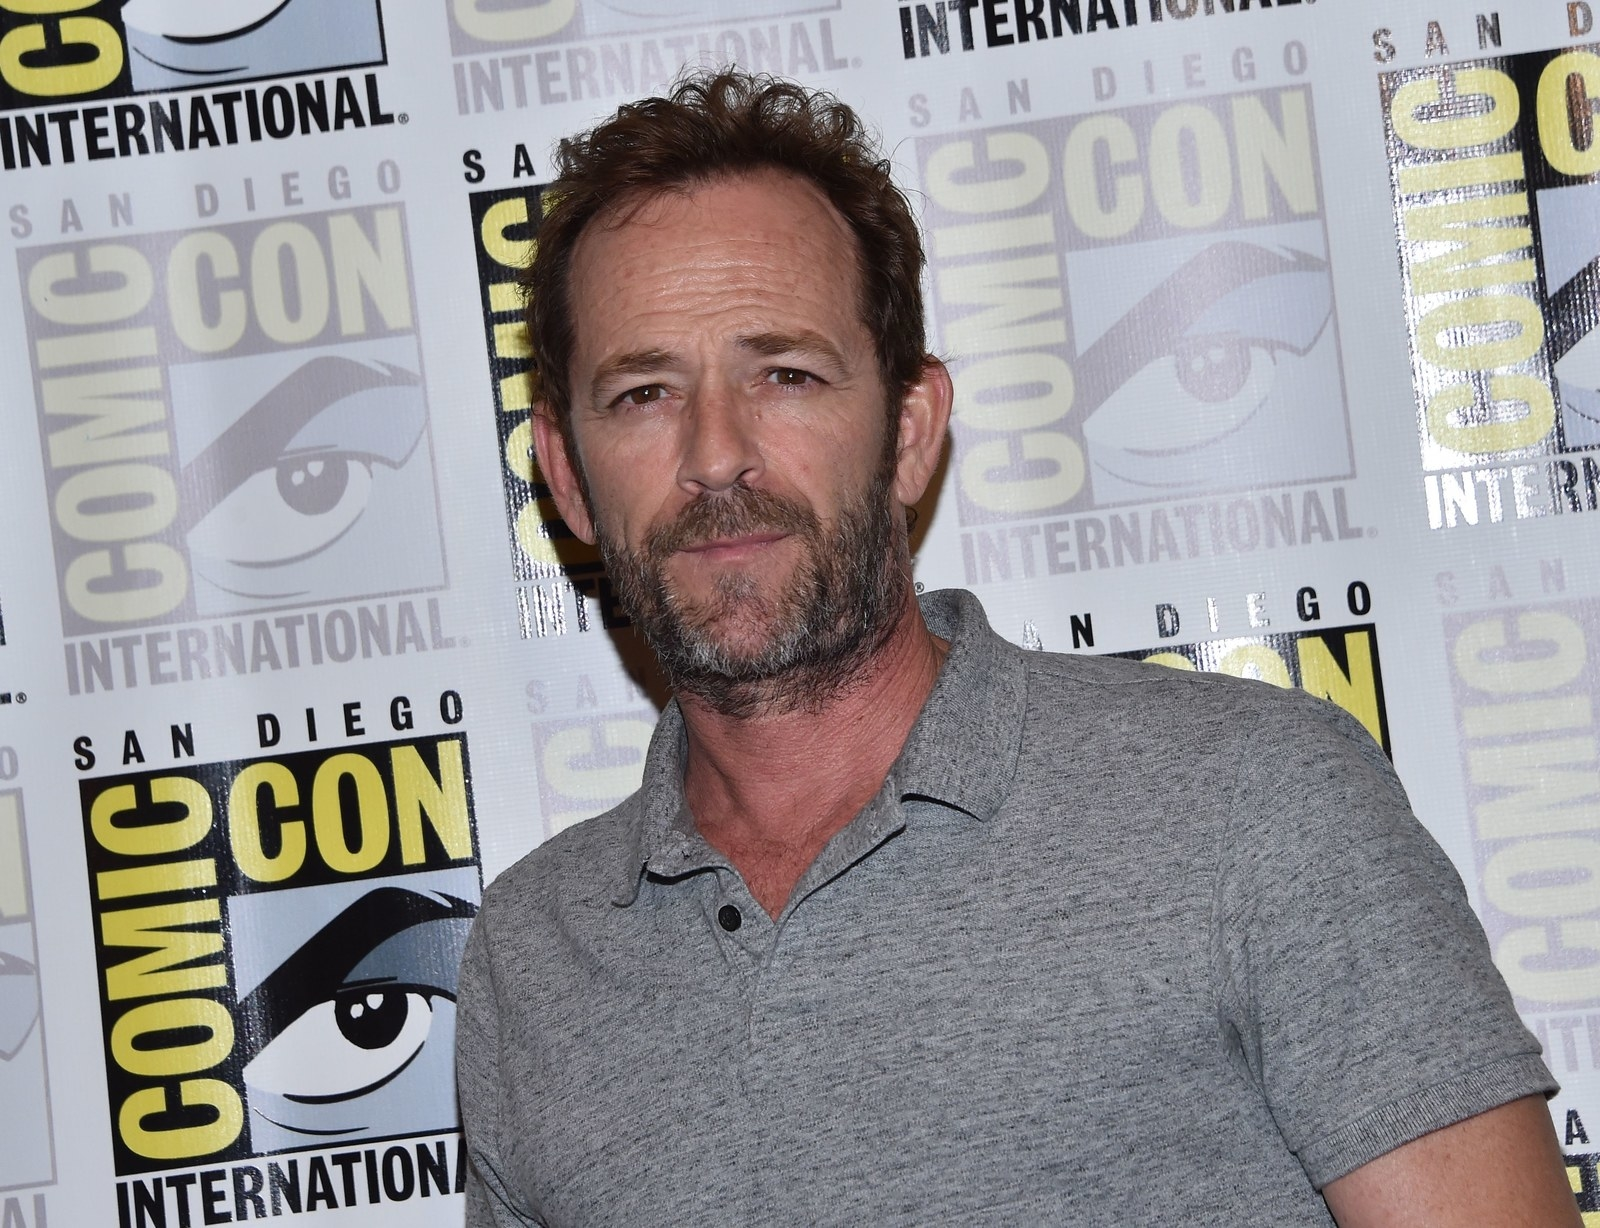 On Wednesday, Luke Perry was  hospitalized  after suffering a stroke in his California home.